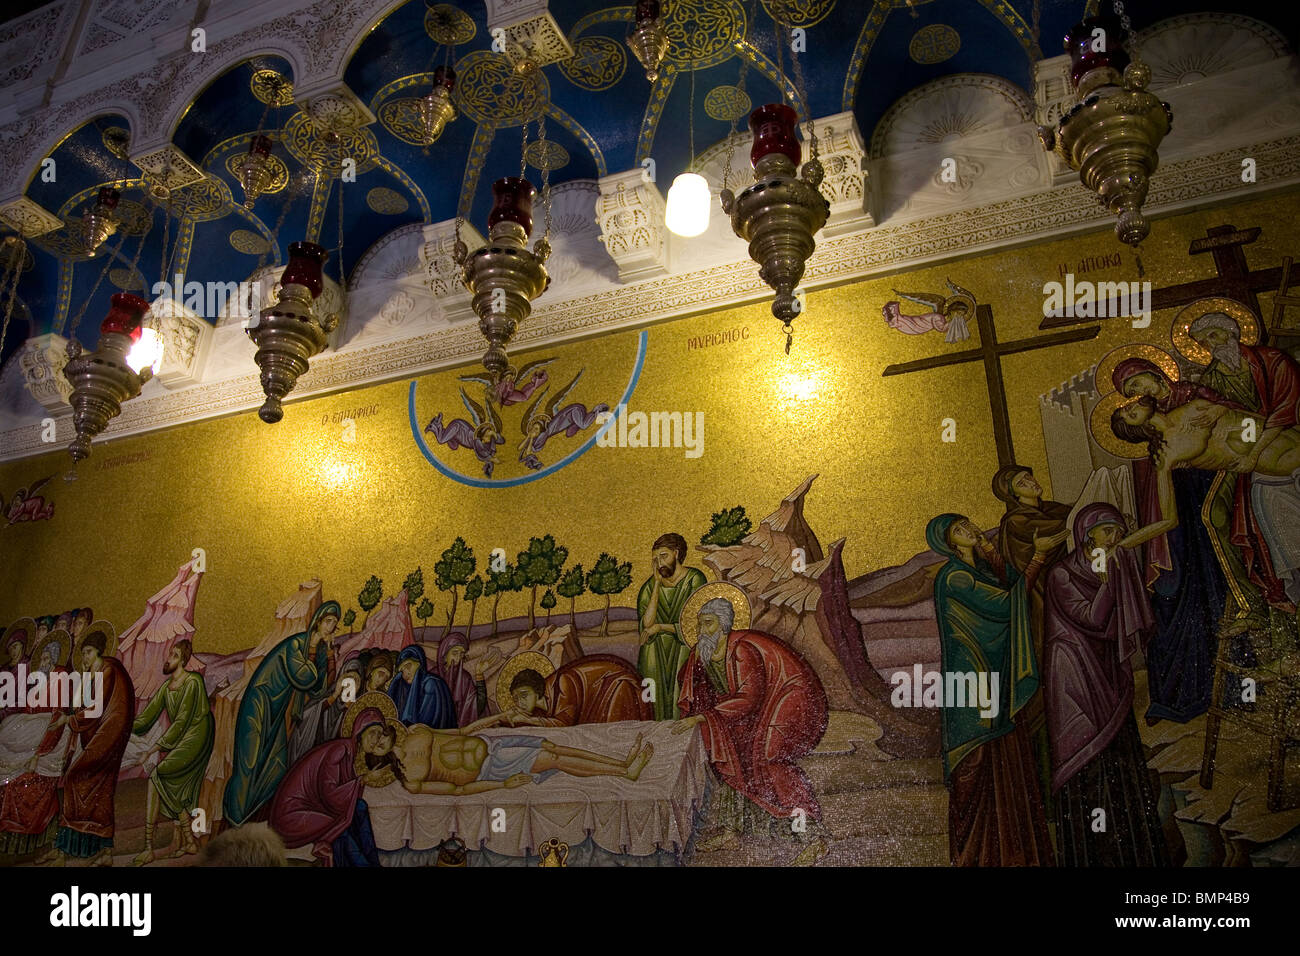 Jerusalem Wall Mosaic Stock Photos & Jerusalem Wall Mosaic Stock ...